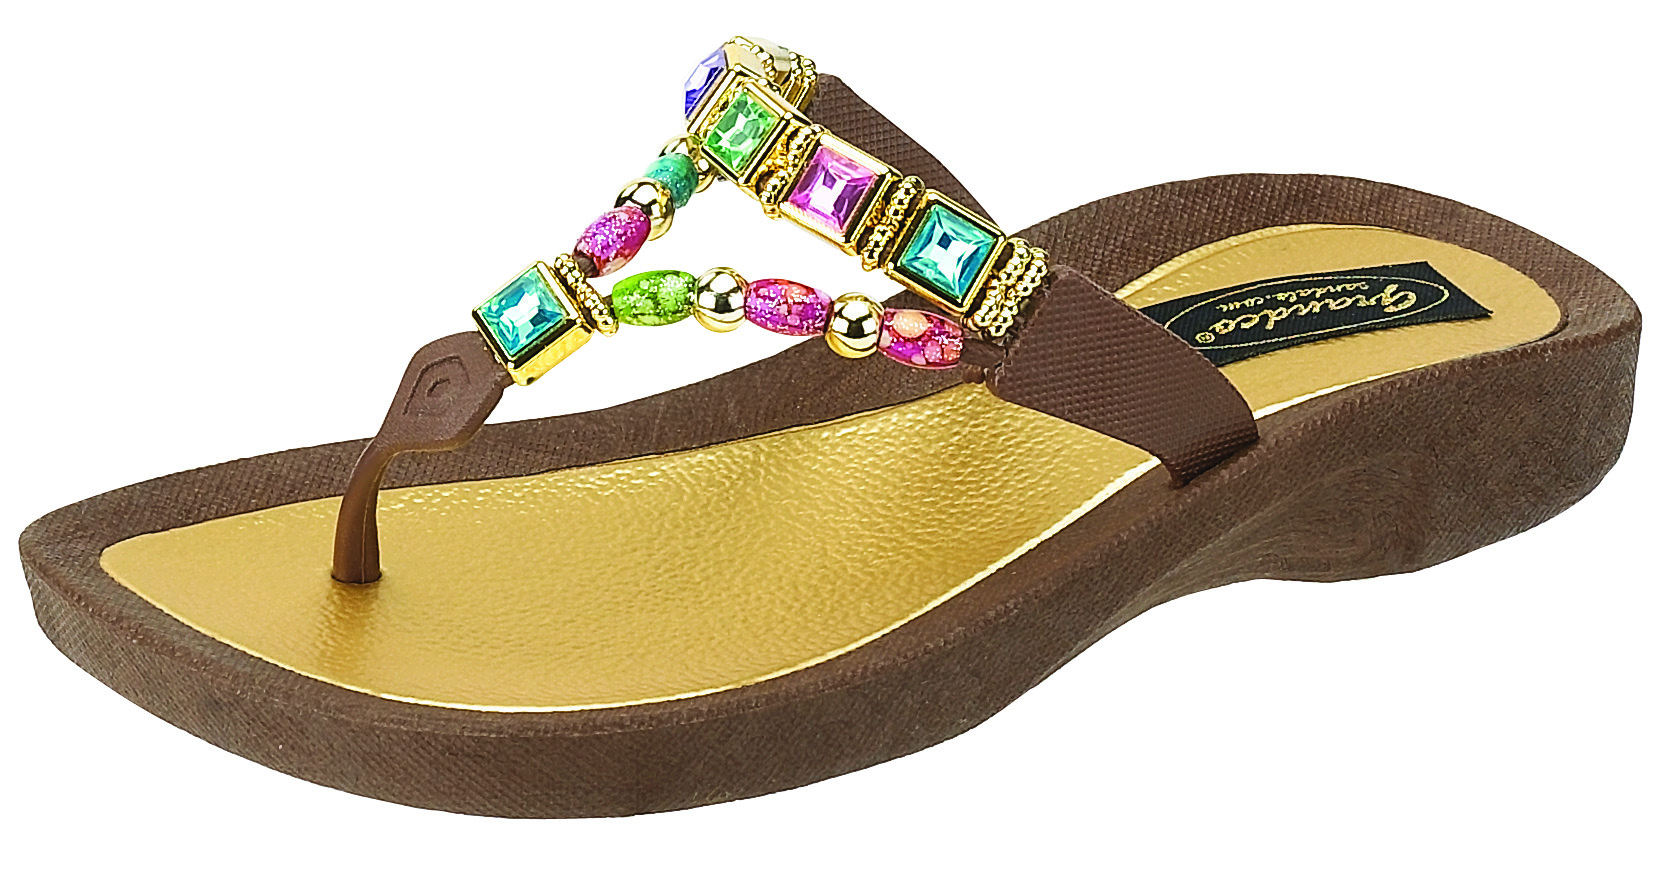 Details about Grandco Fantasy Thong Sandals - Brown - 8